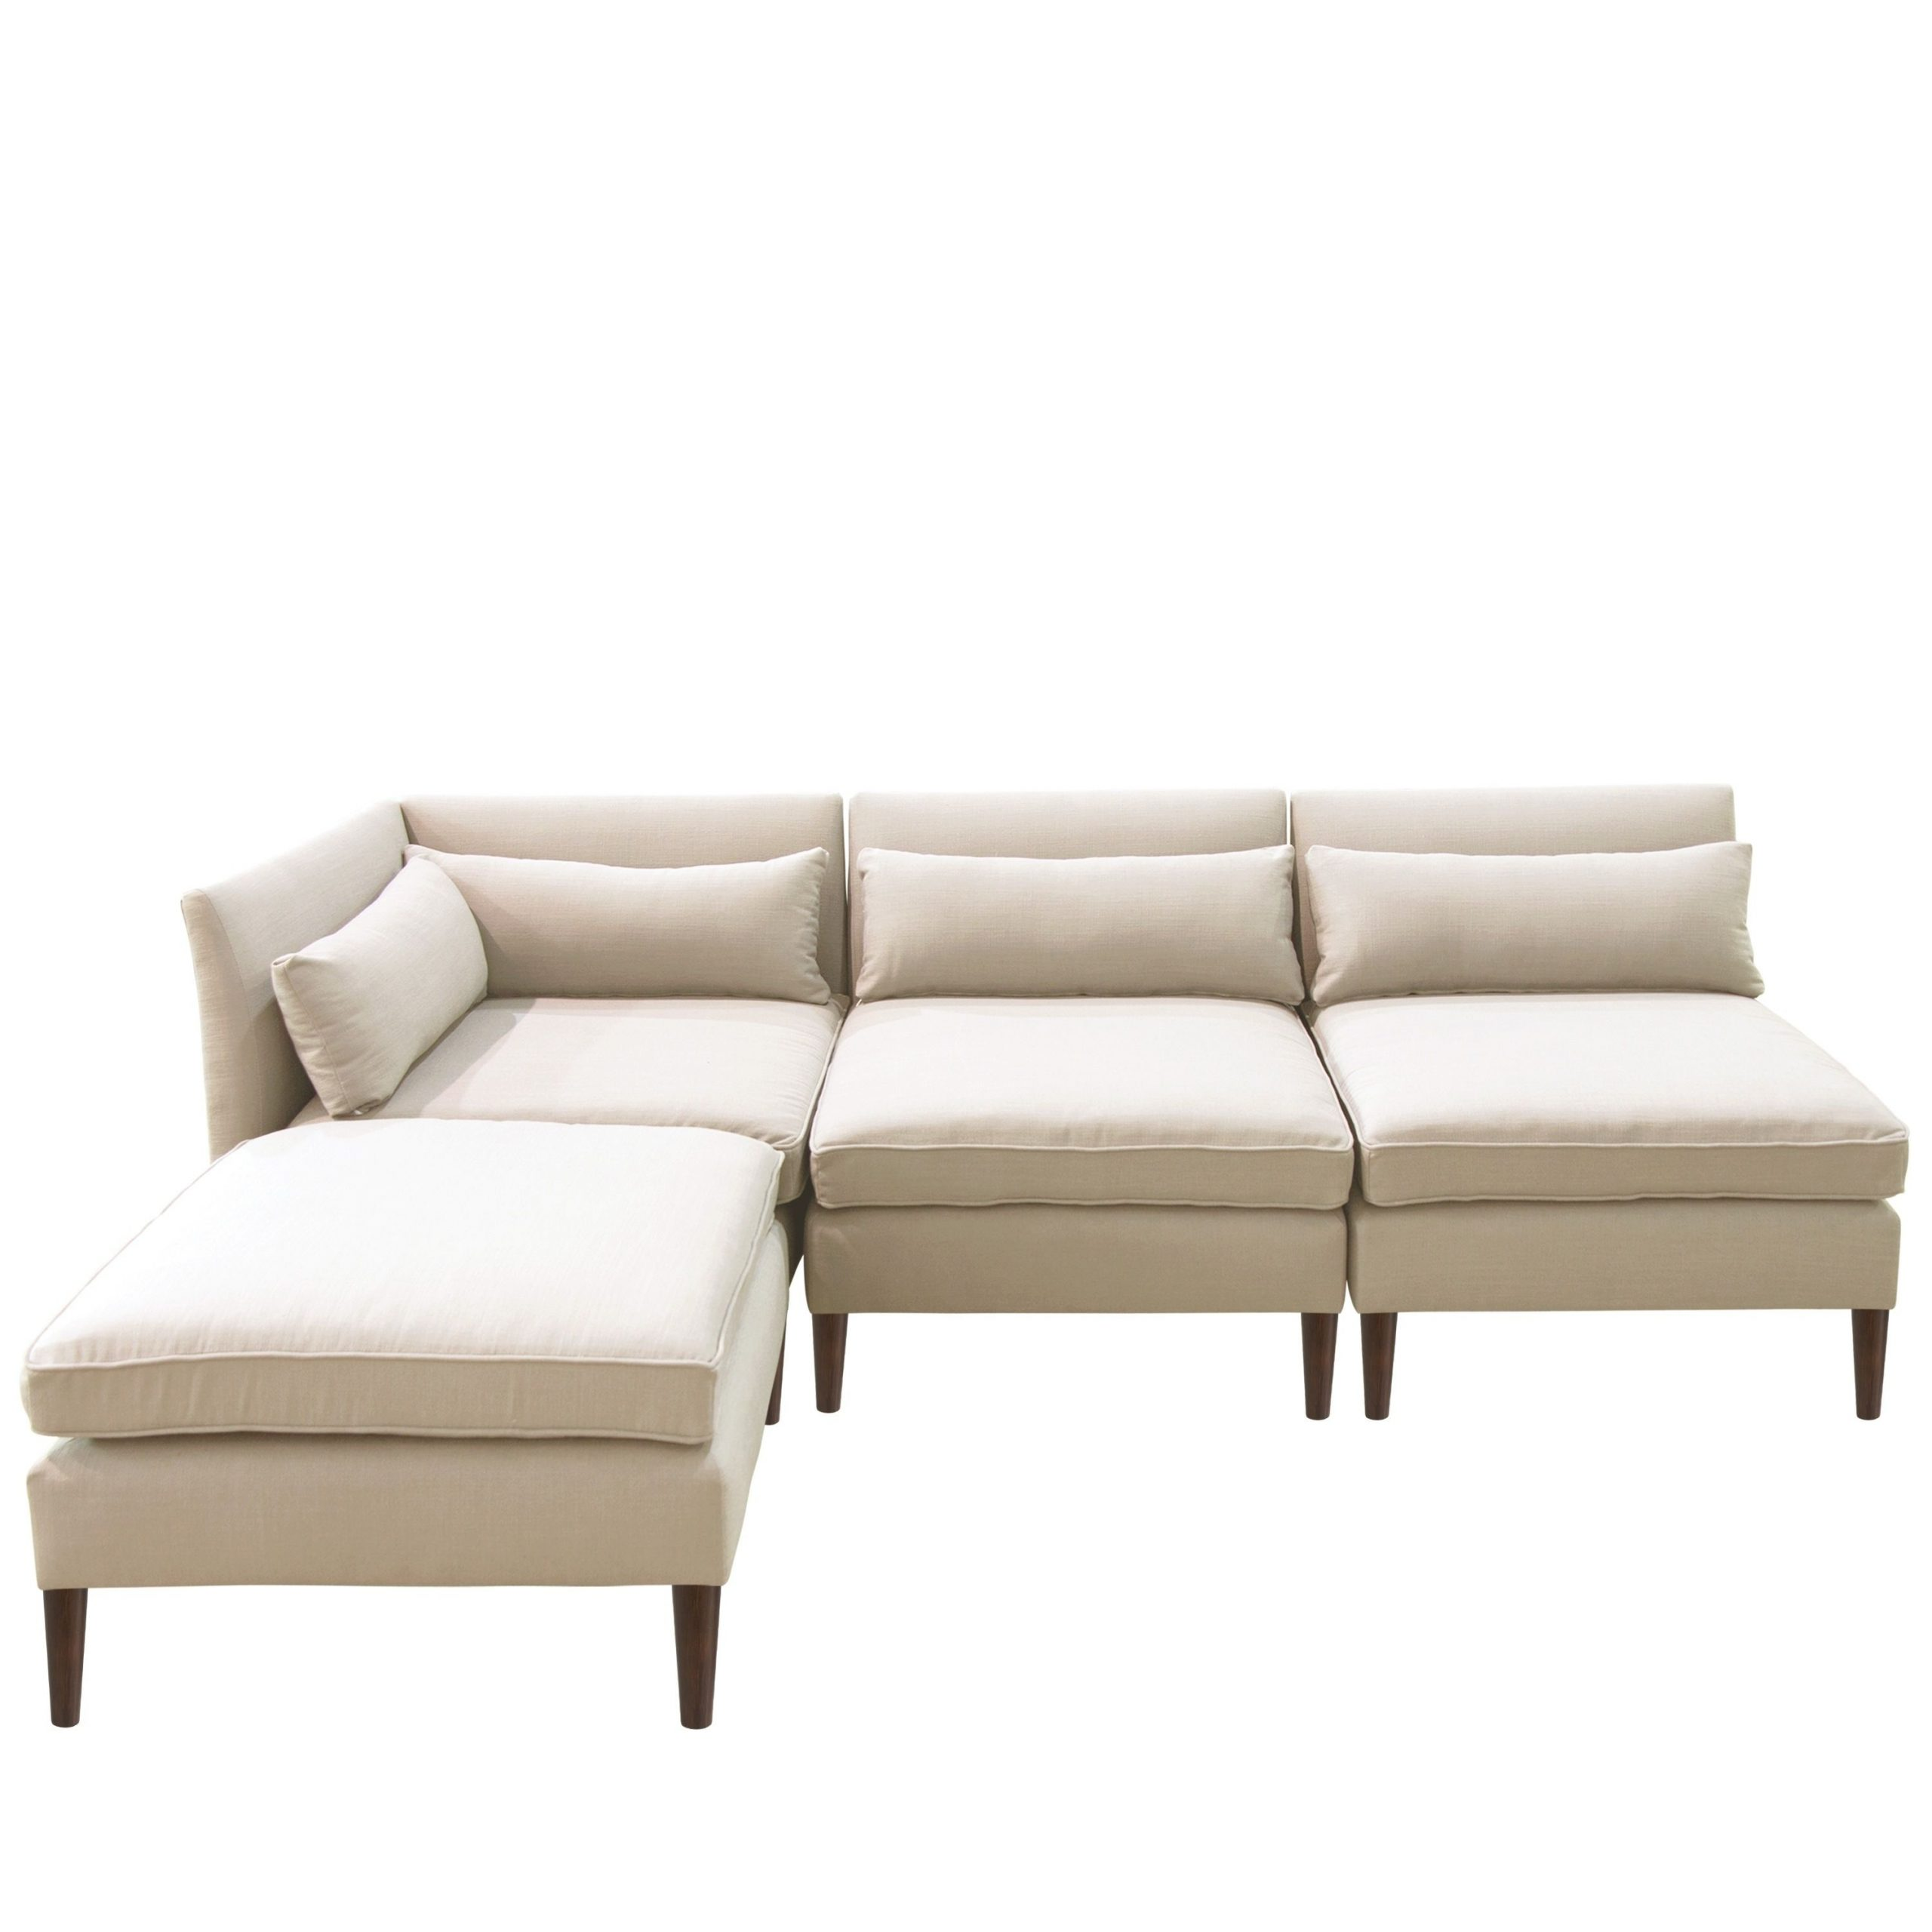 Online Shopping – Bedding, Furniture, Electronics, Jewelry With Well Known 4Pc Alexis Sectional Sofas With Silver Metal Y Legs (View 6 of 25)